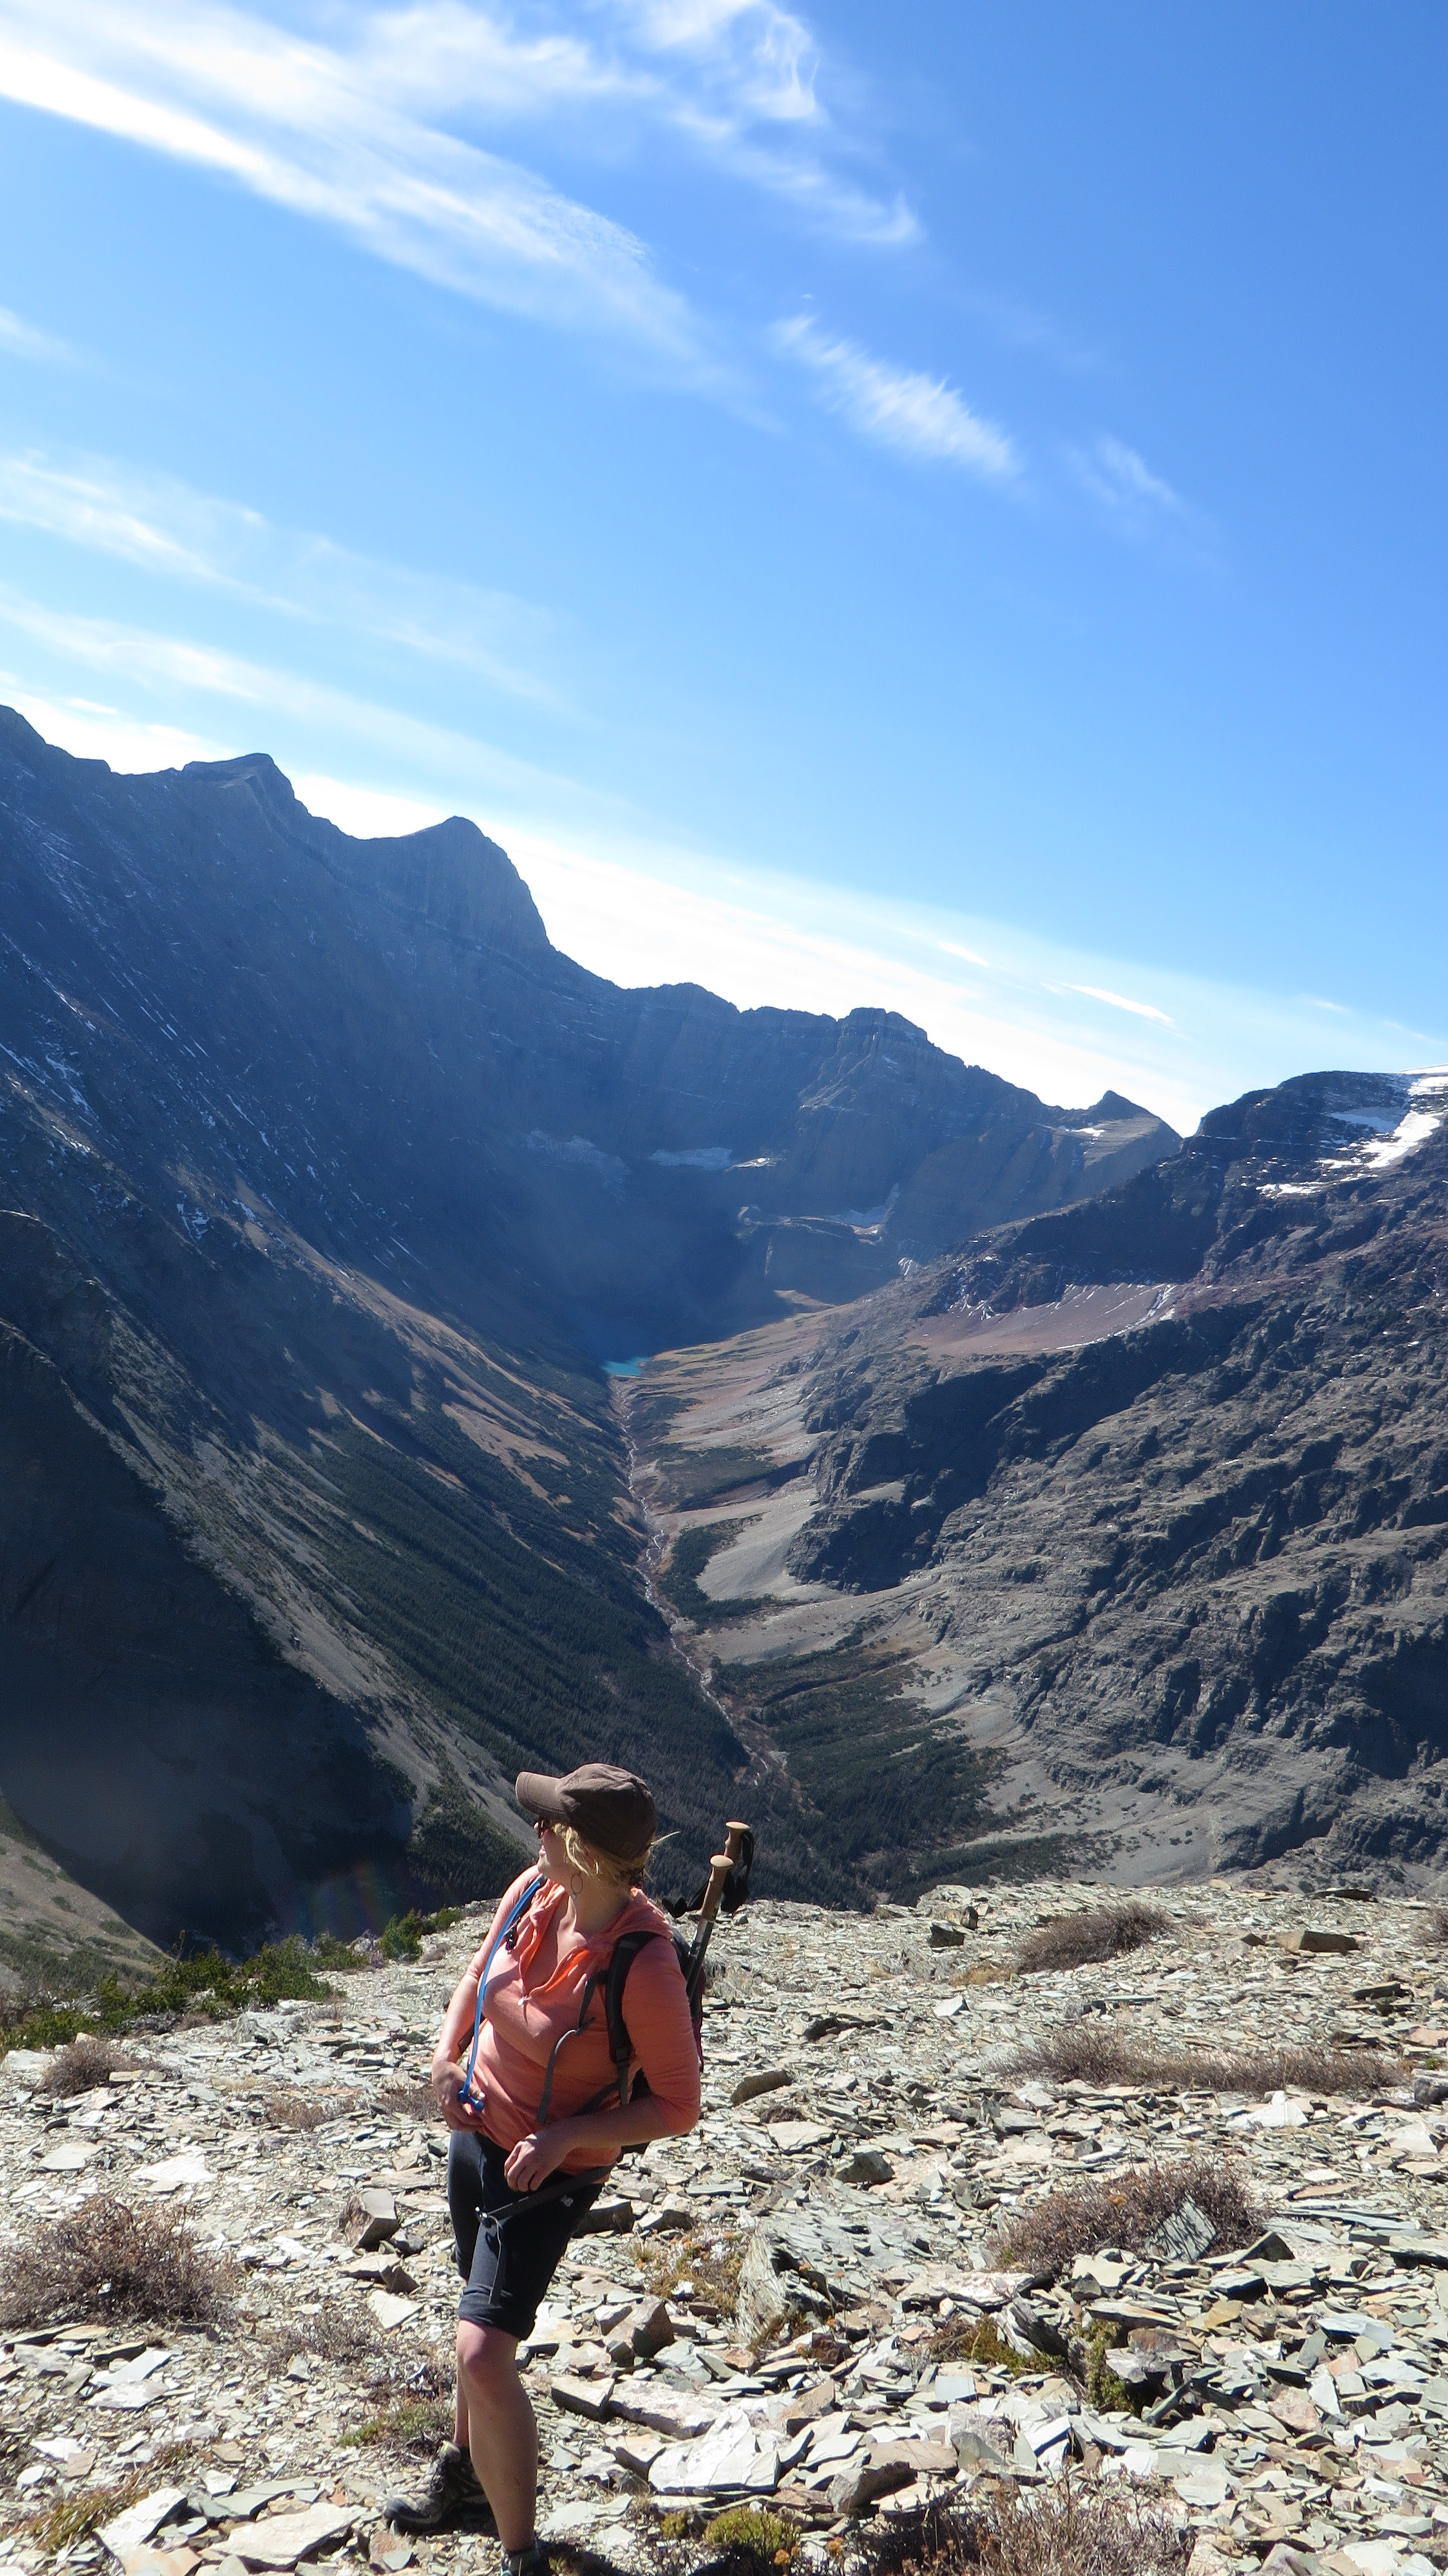 Working our way up the southwest ridge of Mt. Wynn, with Cracker Lake and Mt. Siyeh in the background